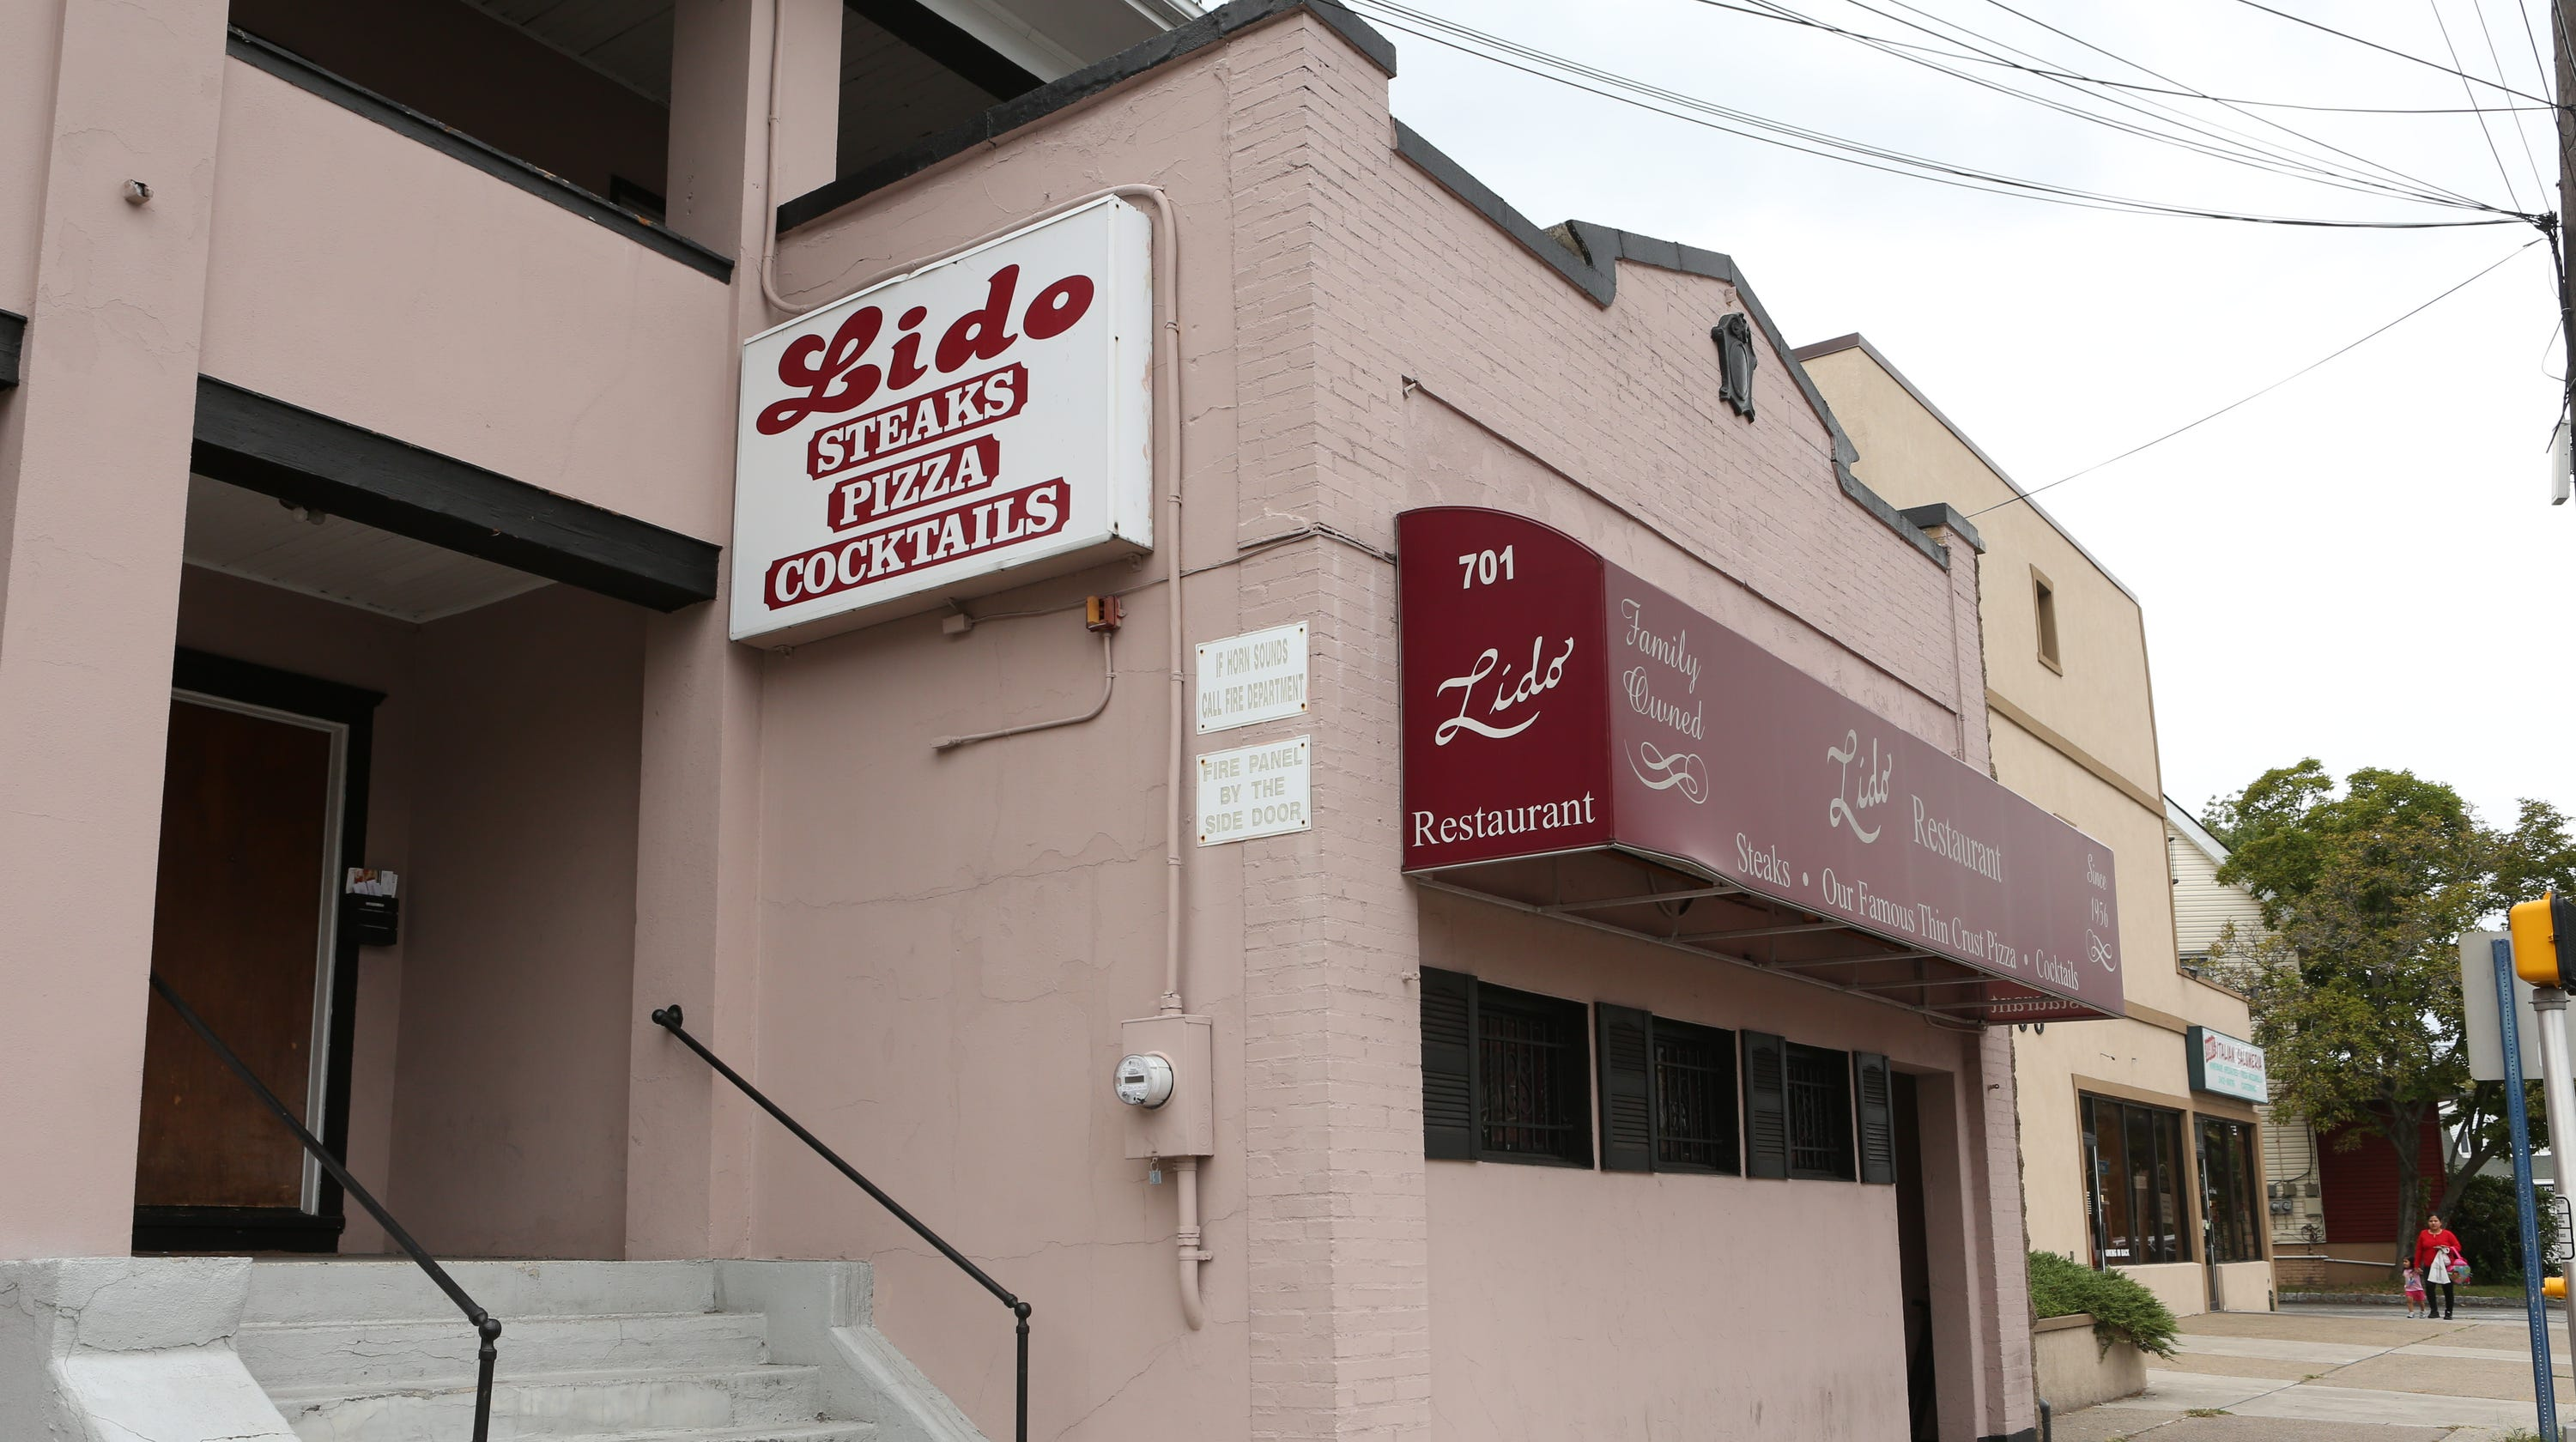 Lido Restaurant In Hackensack Sold To New Owners